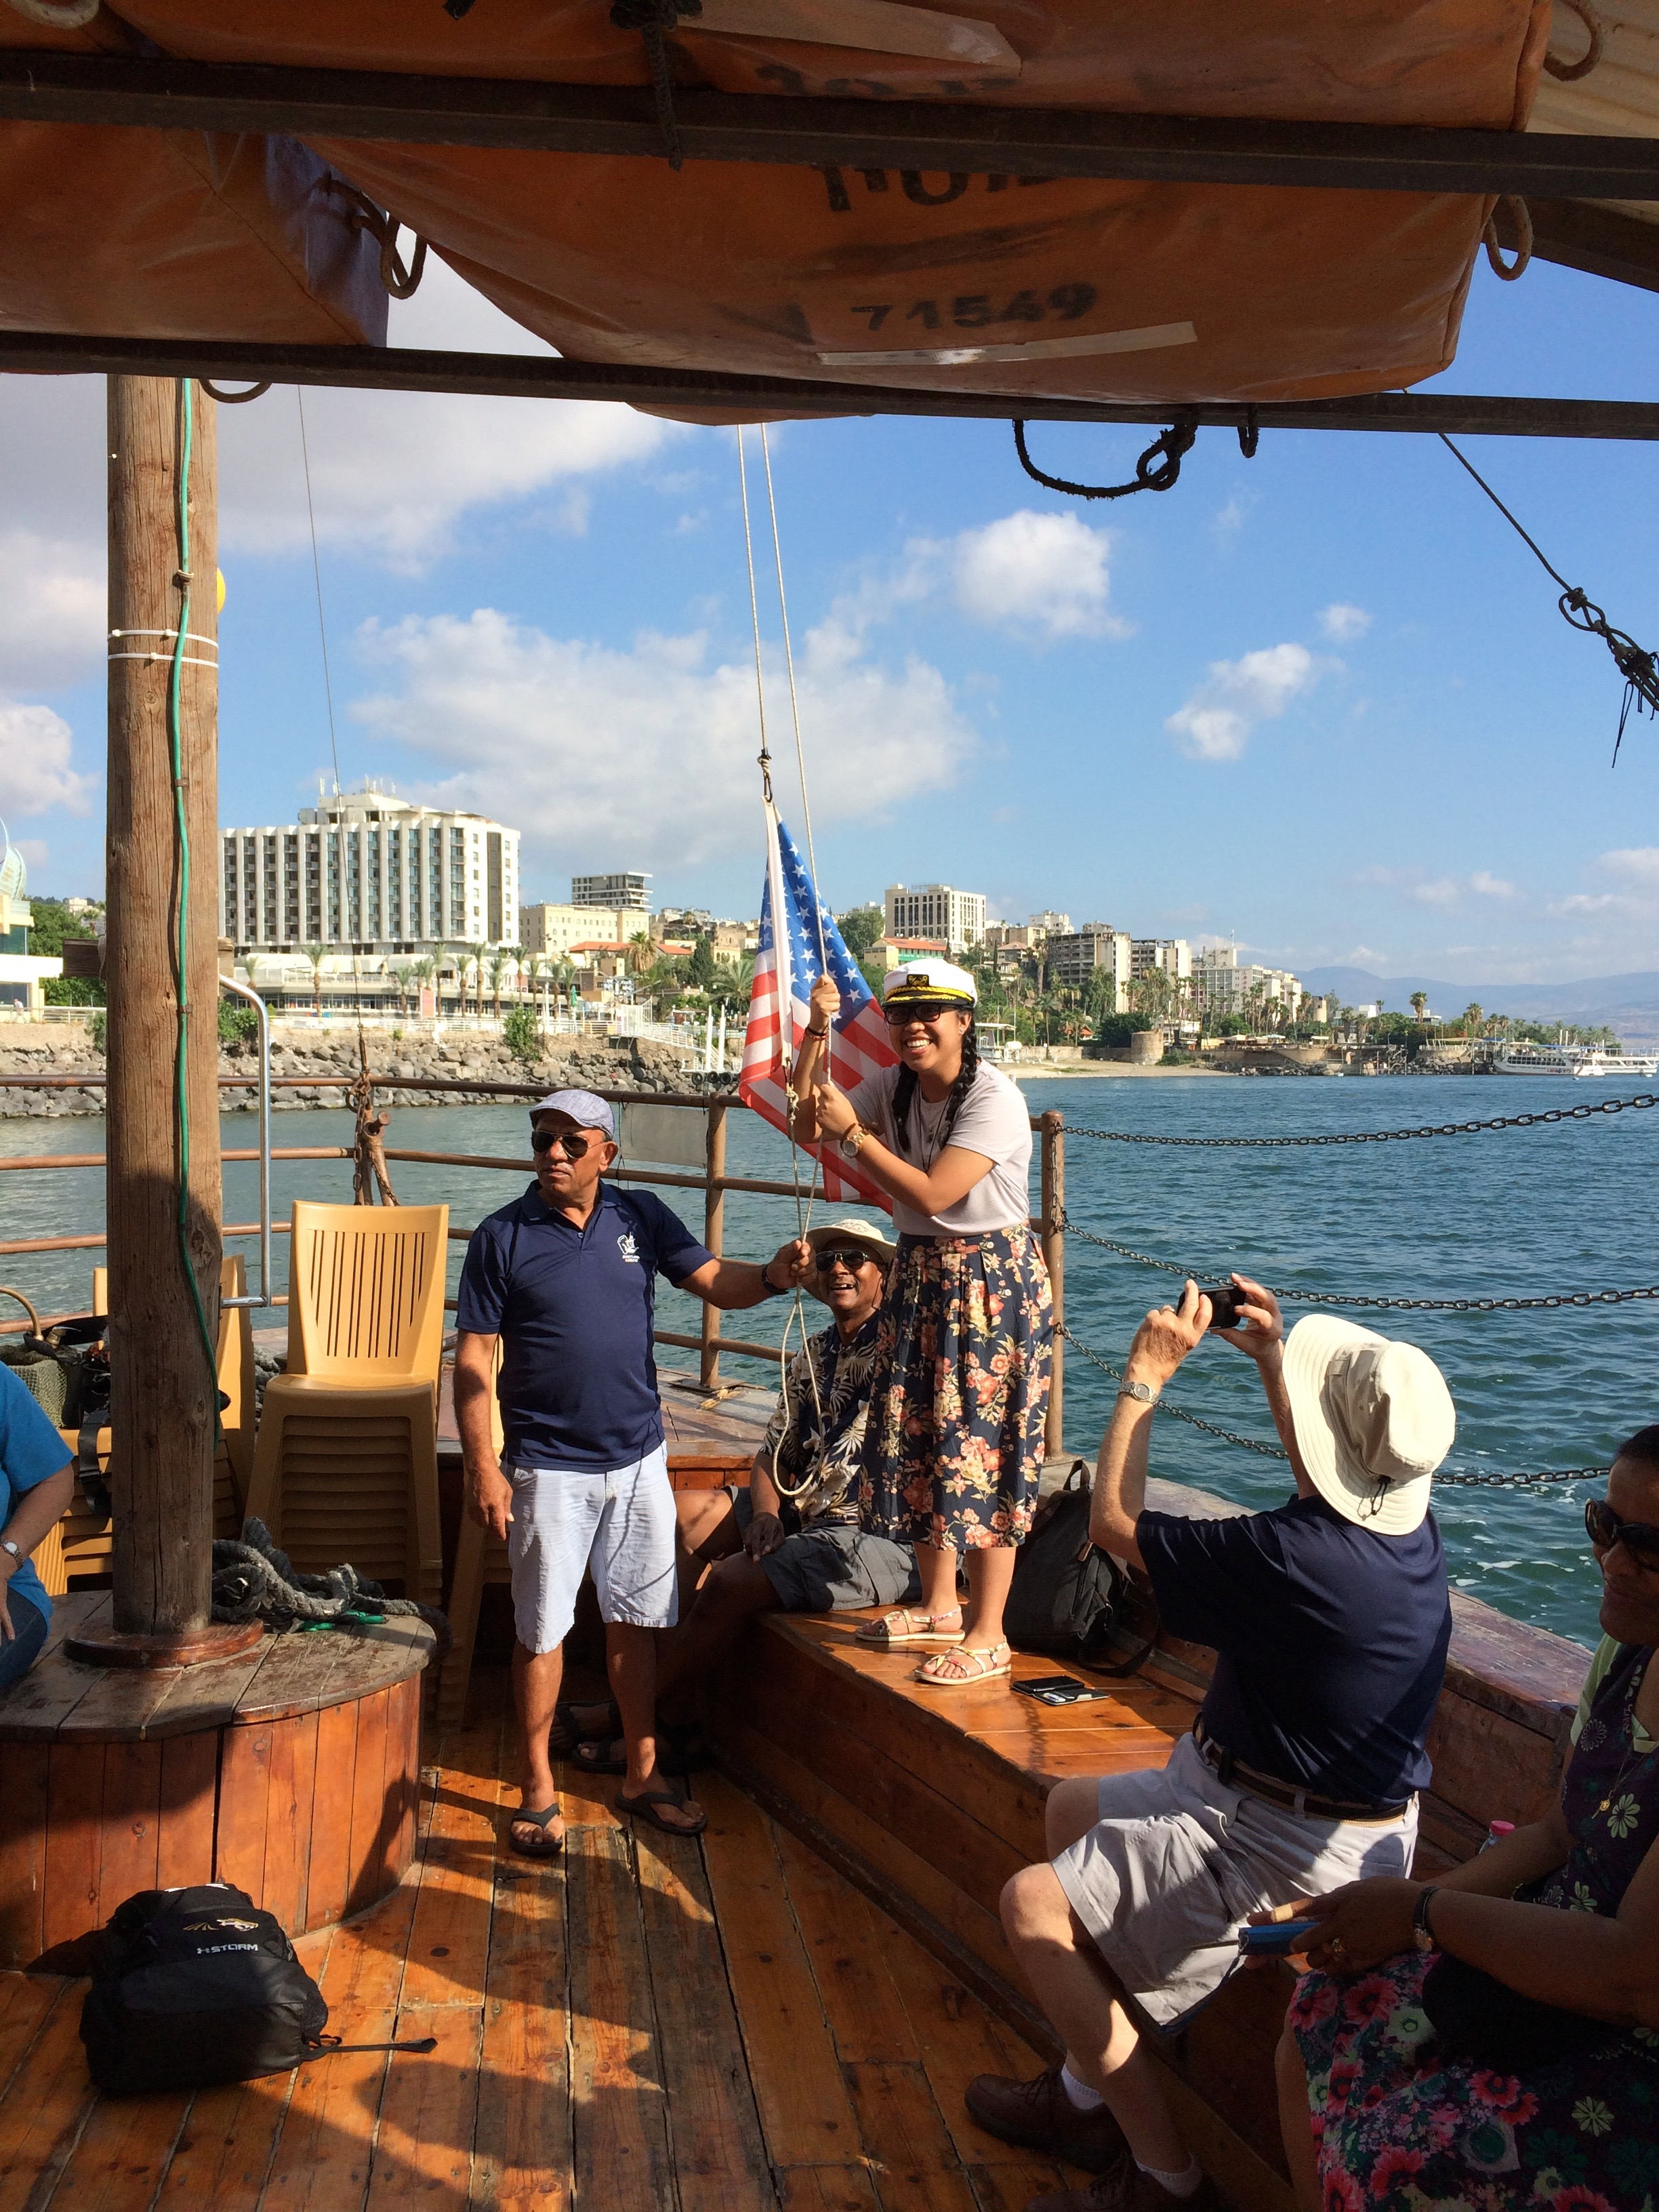 A patriotic moment on the Sea of Galilee.